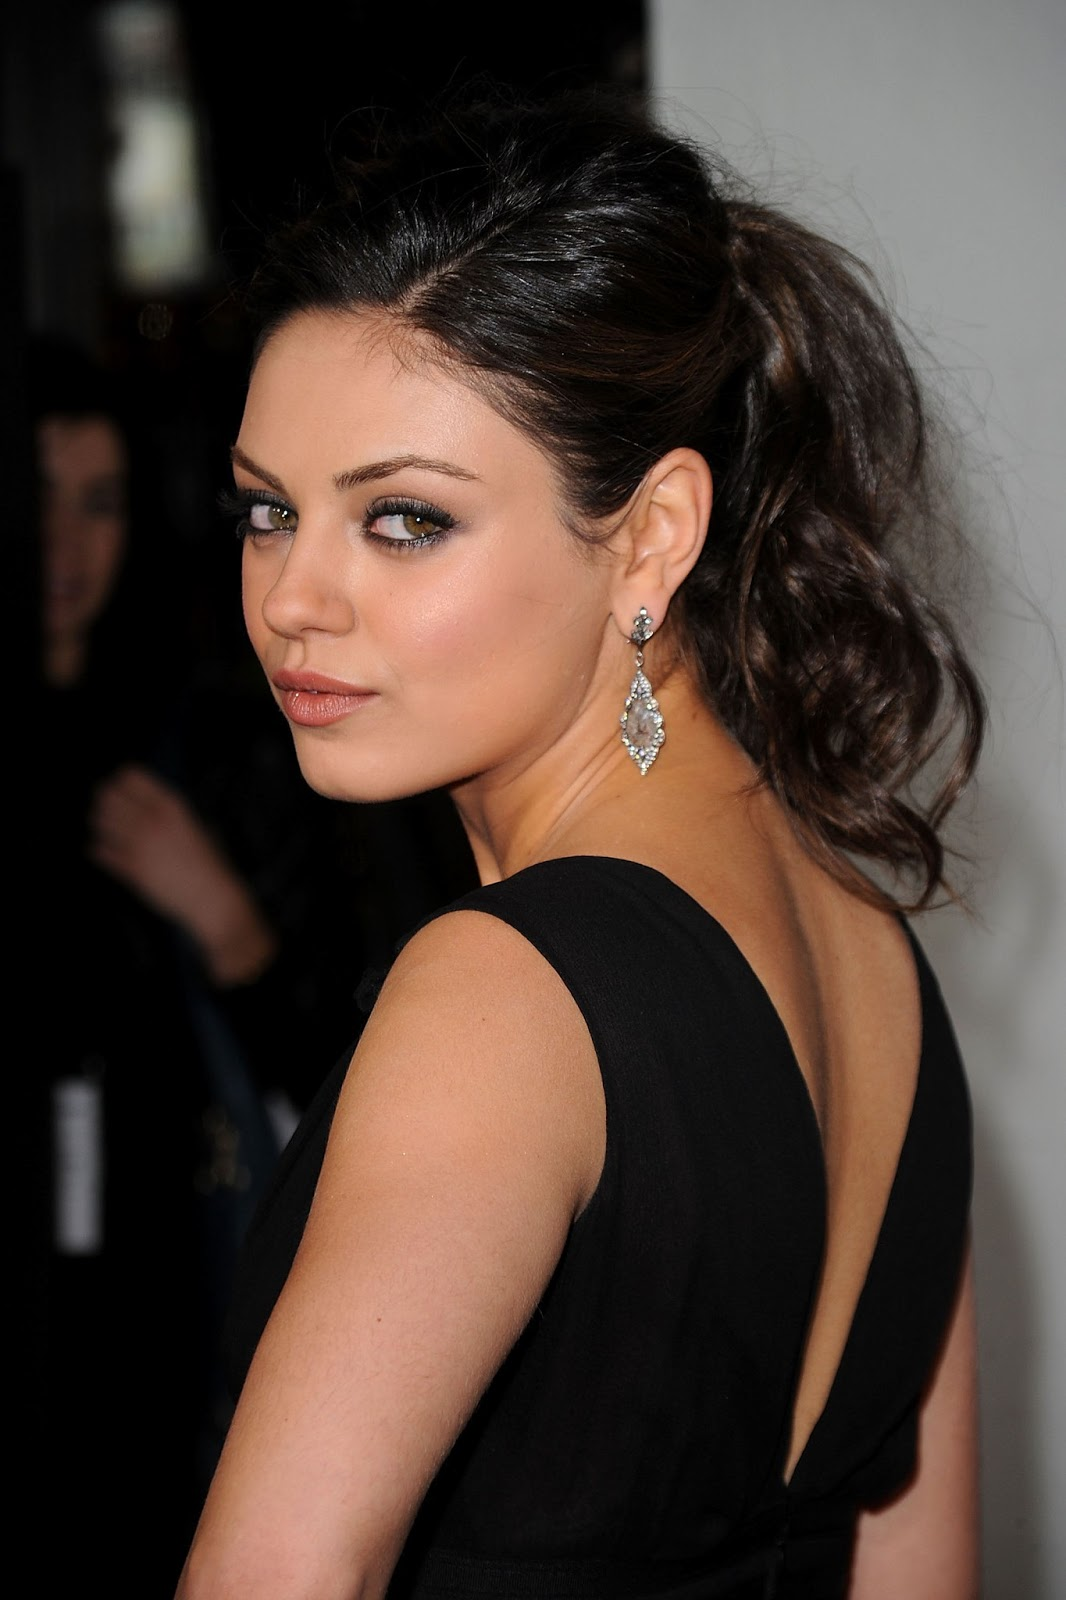 Mila Kunis Latest Hd Wallpapers Hd Wallpapers High